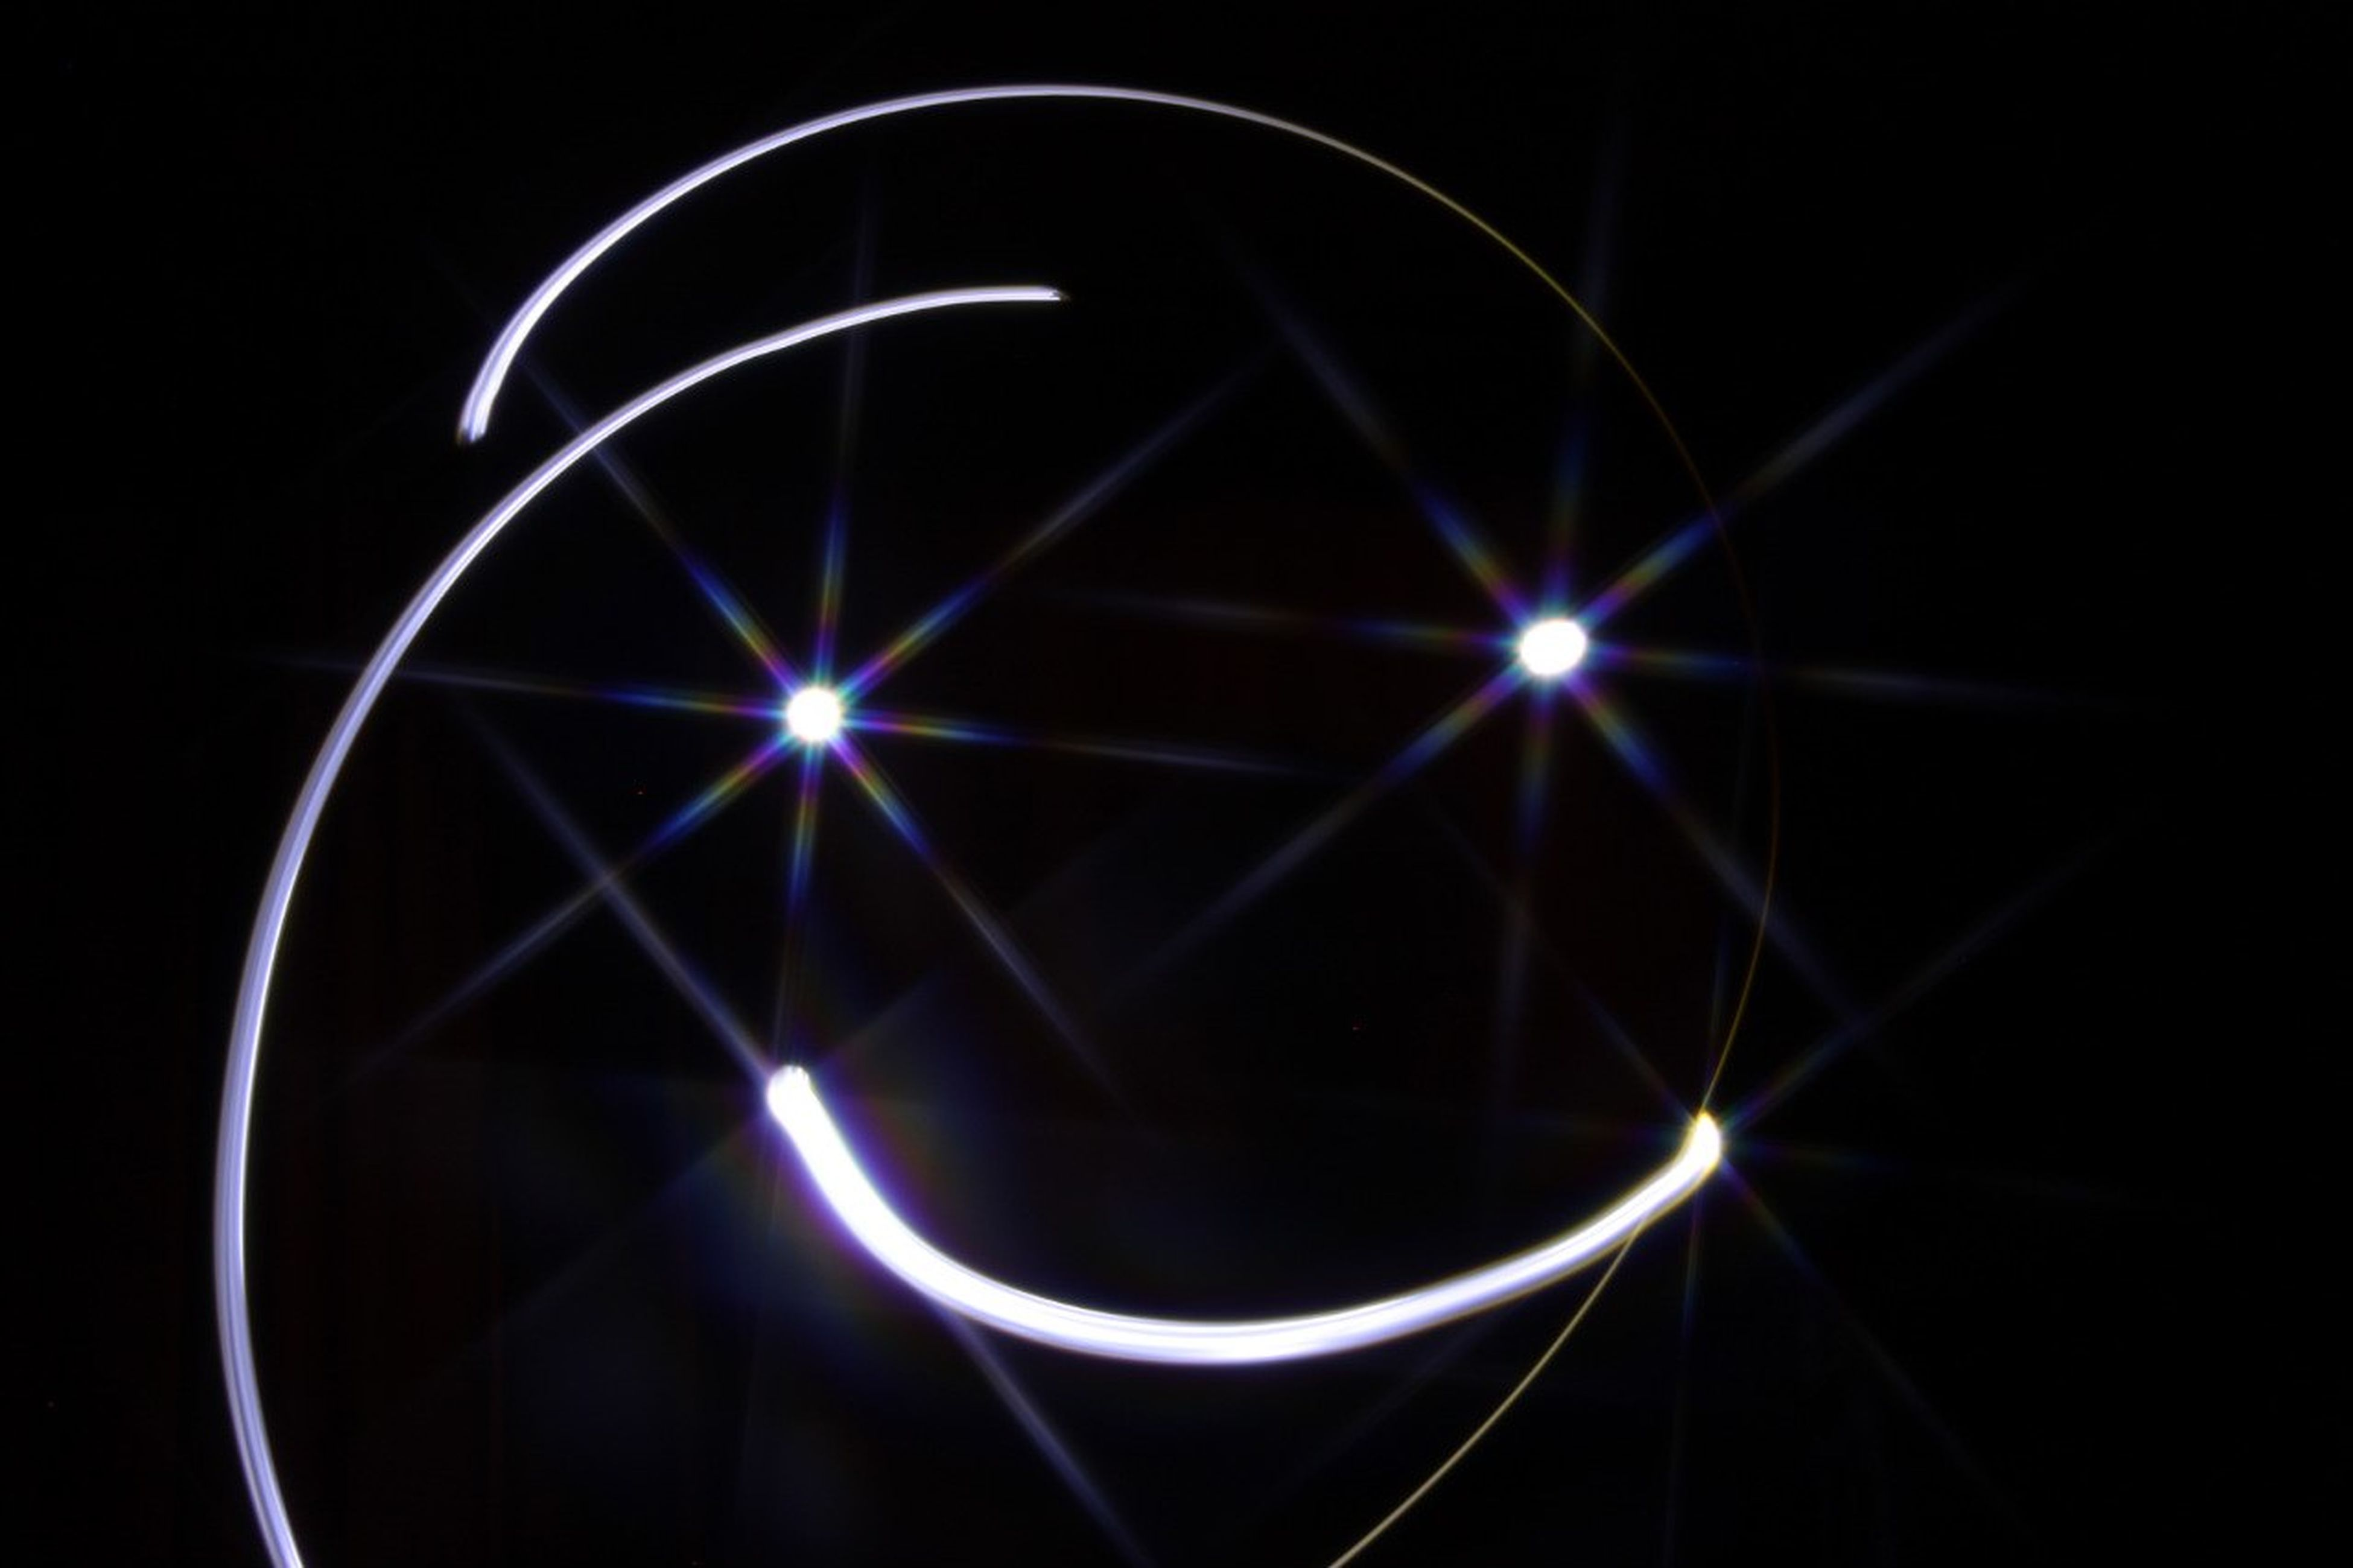 pattern, abstract, laser, light trail, technology, backgrounds, no people, night, science, big data